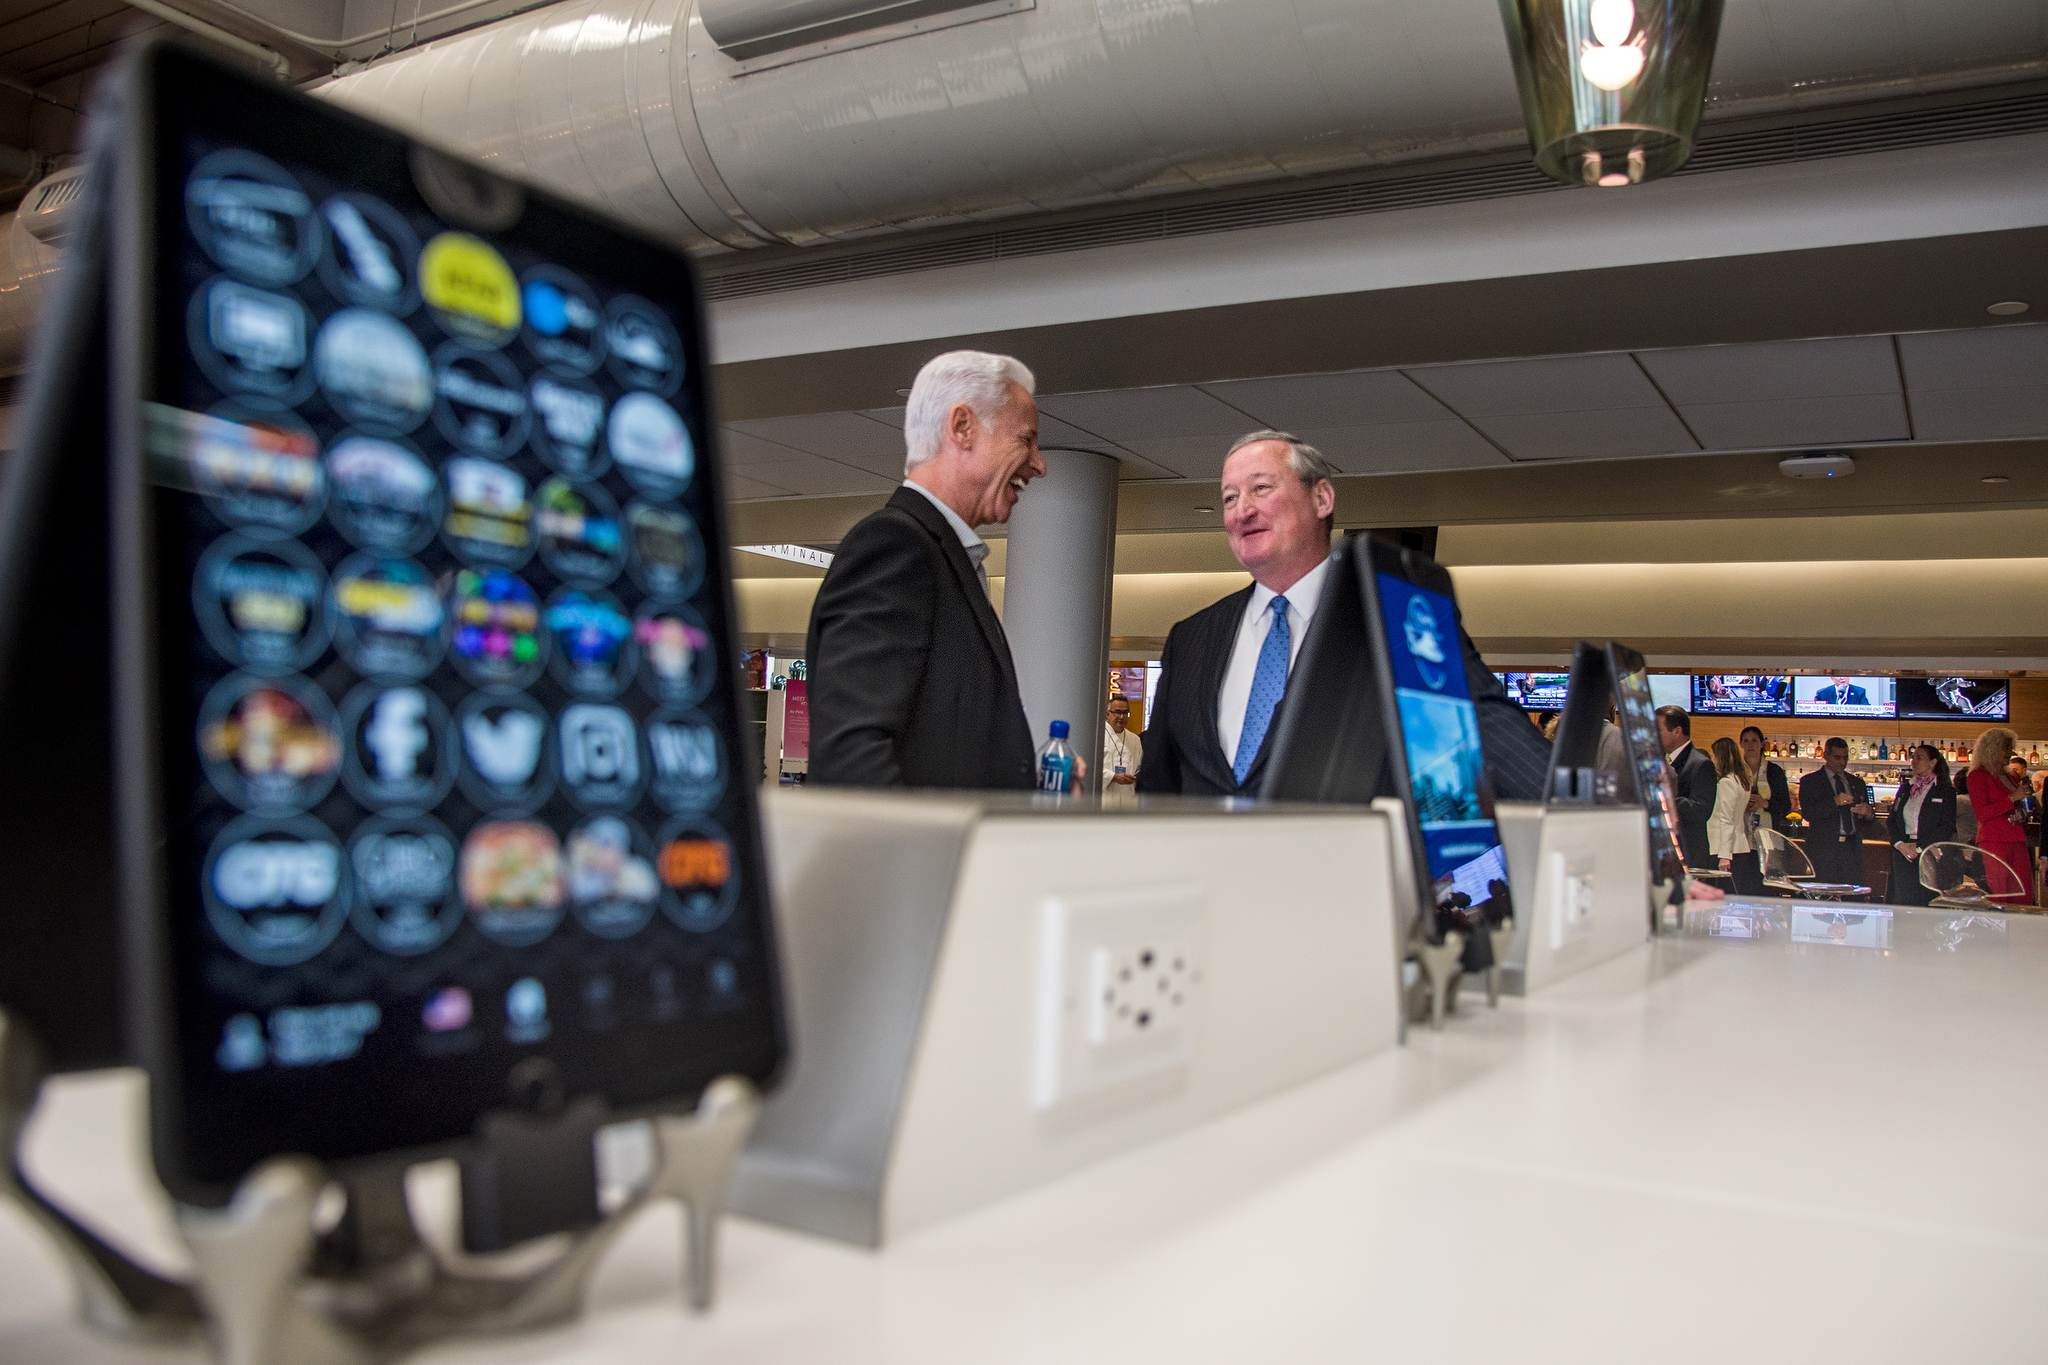 Among a few of the thousands of Terminal B's newly-installed iPads, Mayor Kenney (right) talks with Rick Blatstein, OTG founder and CEO, before Monday's ribbon cutting at PHL.